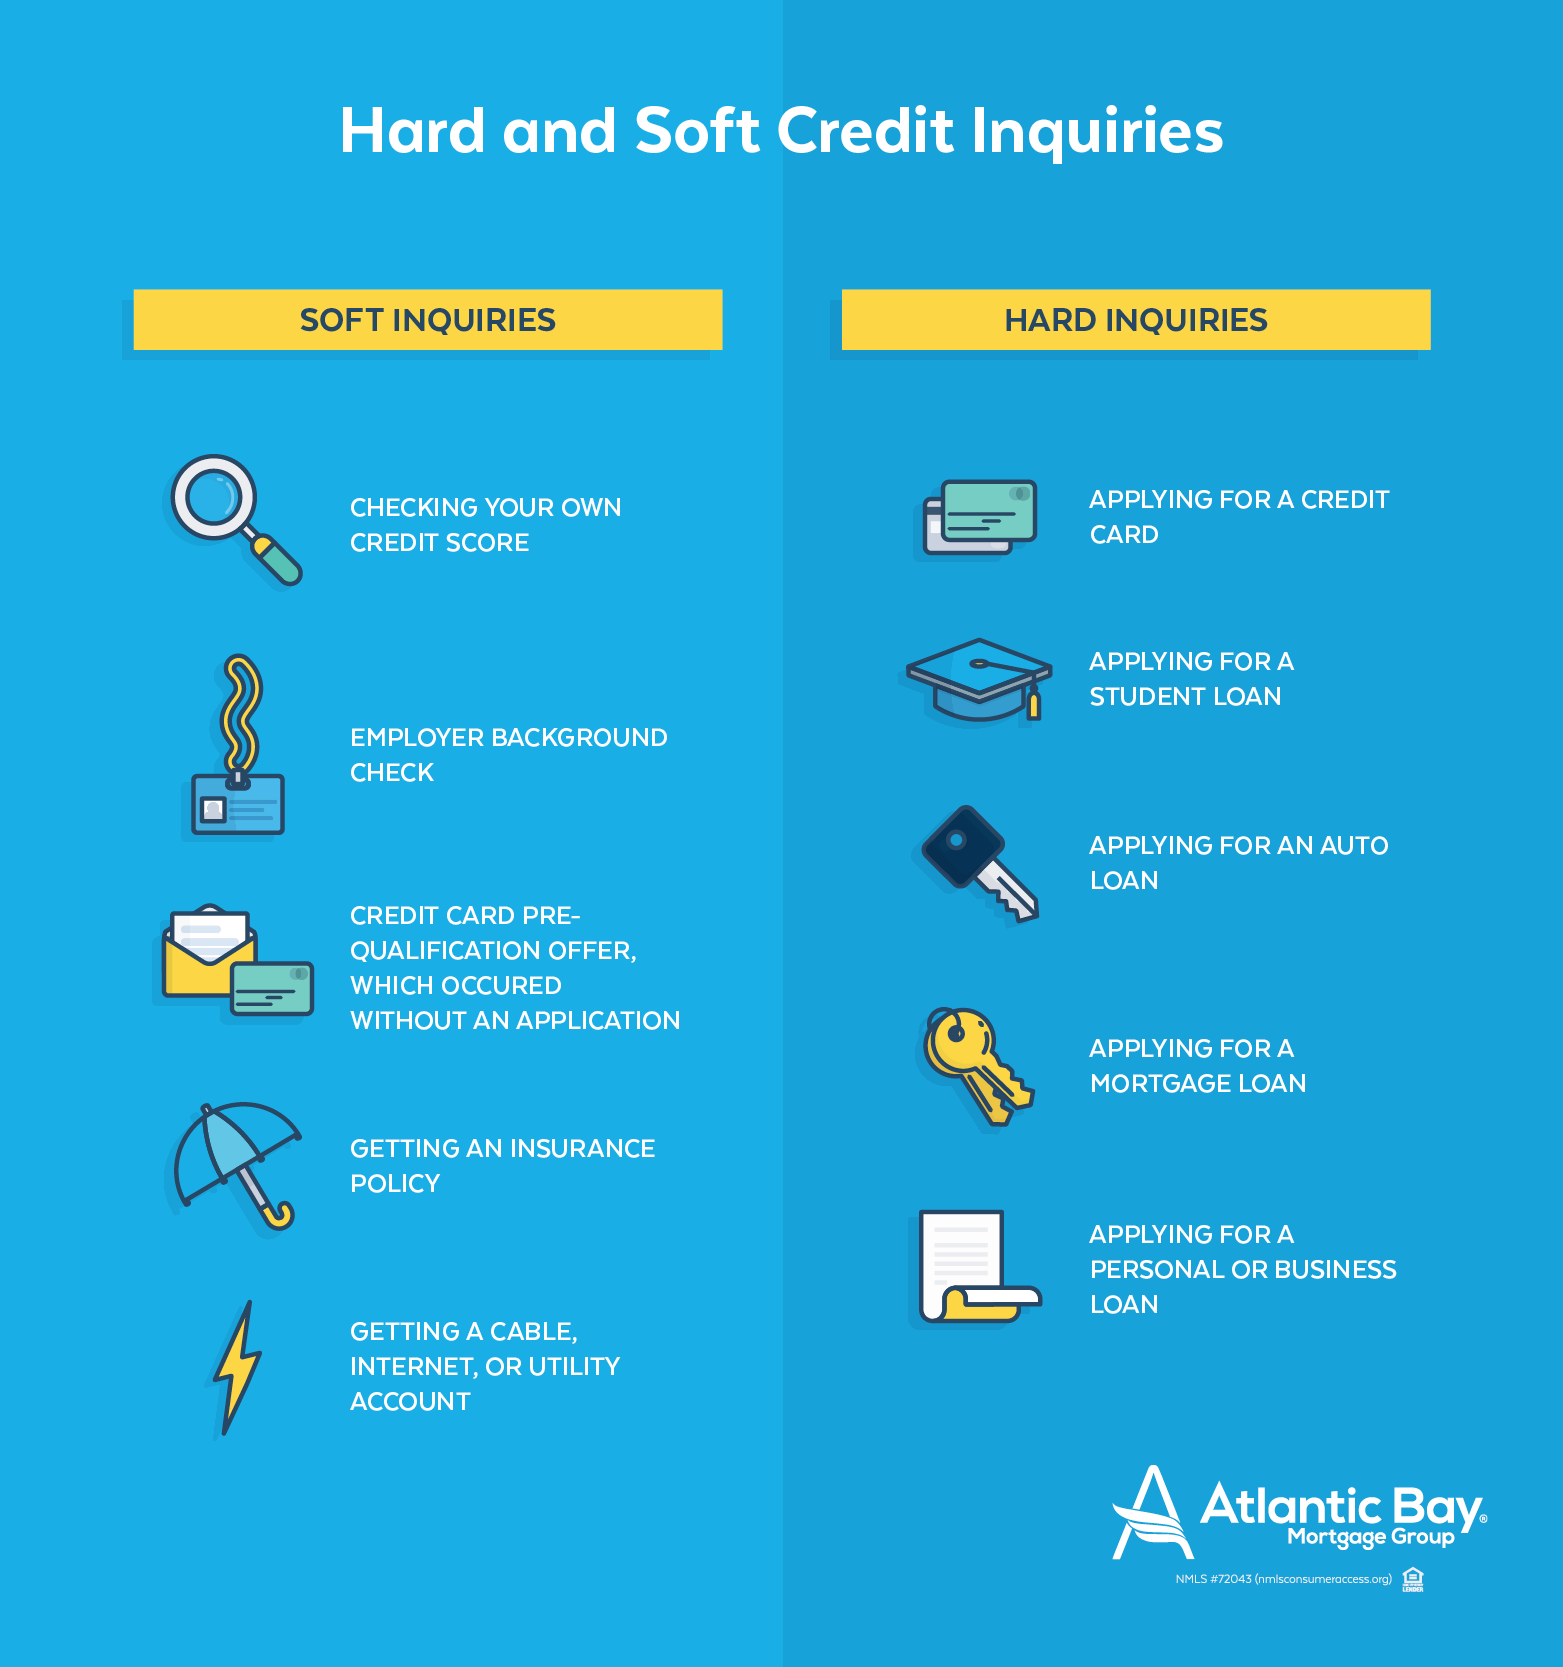 Hard and Soft Credit Inquiries